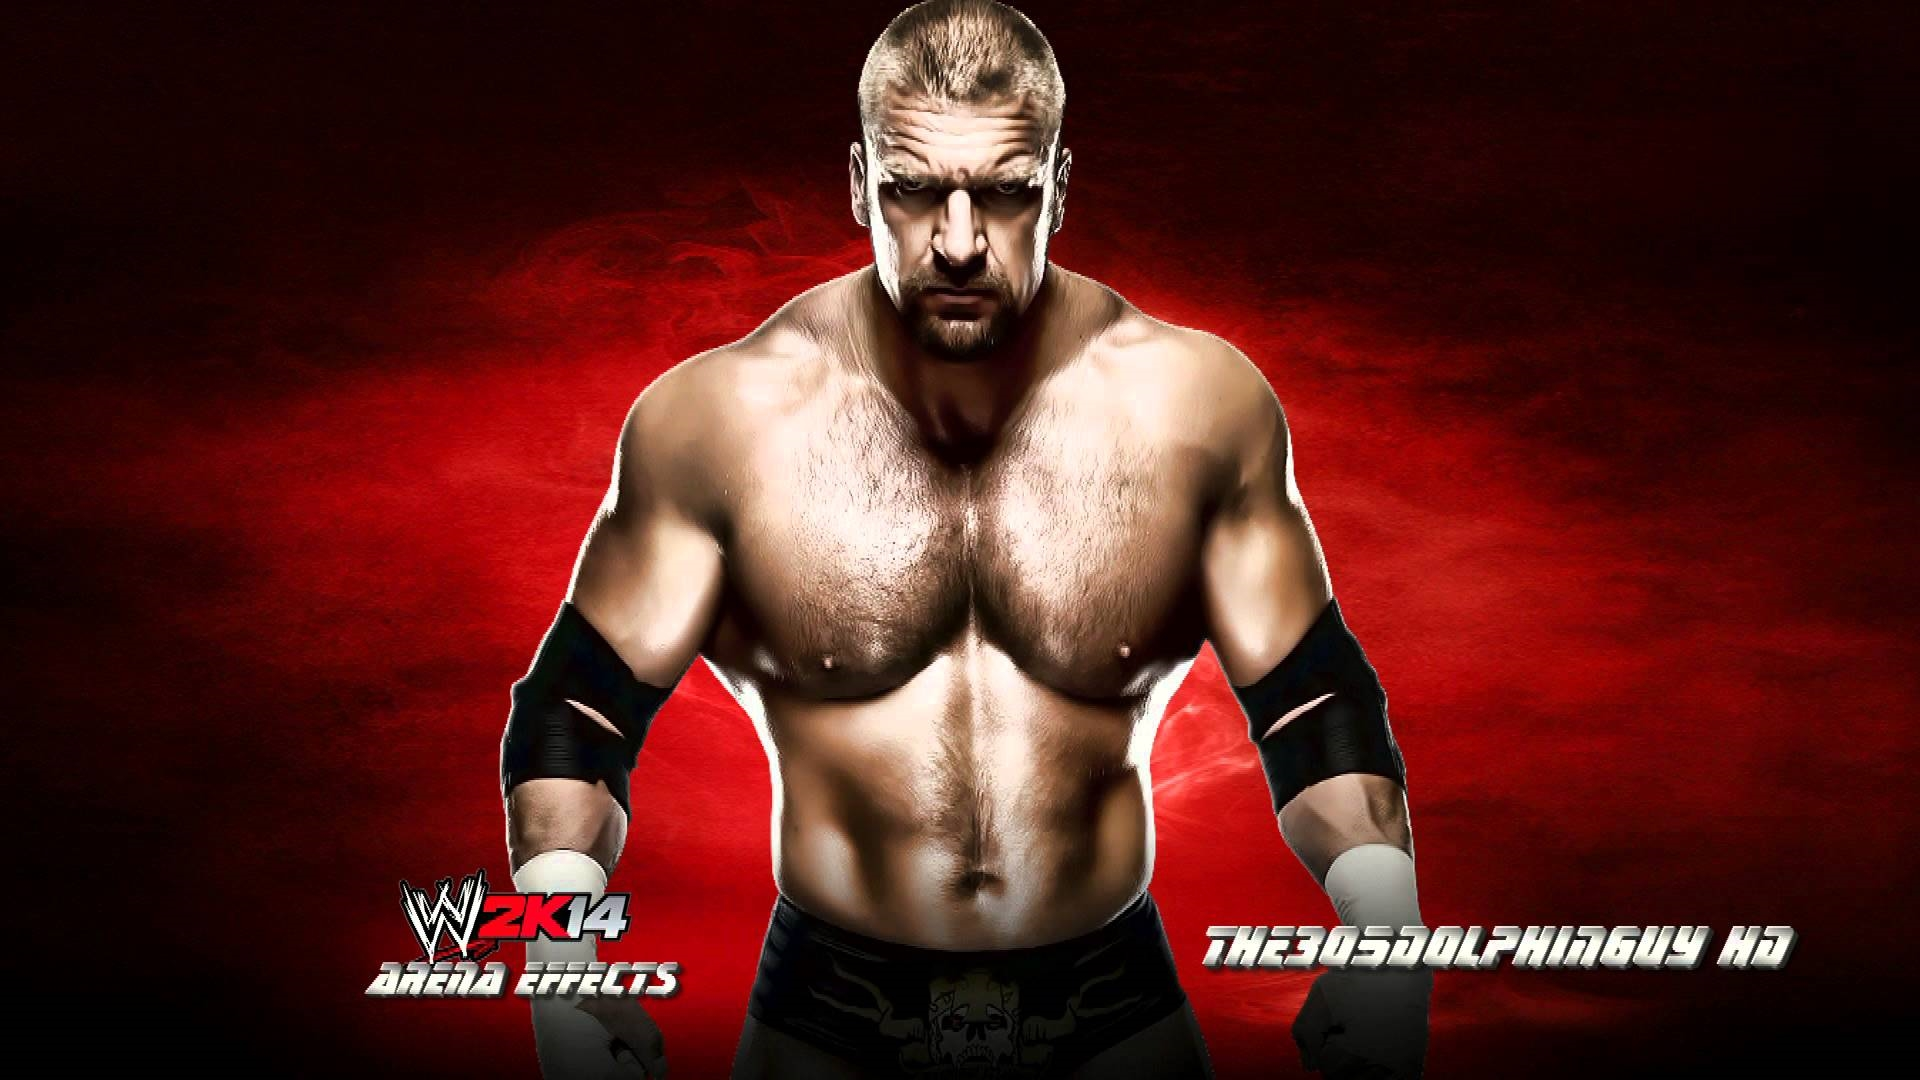 hhh triple h wwe hd